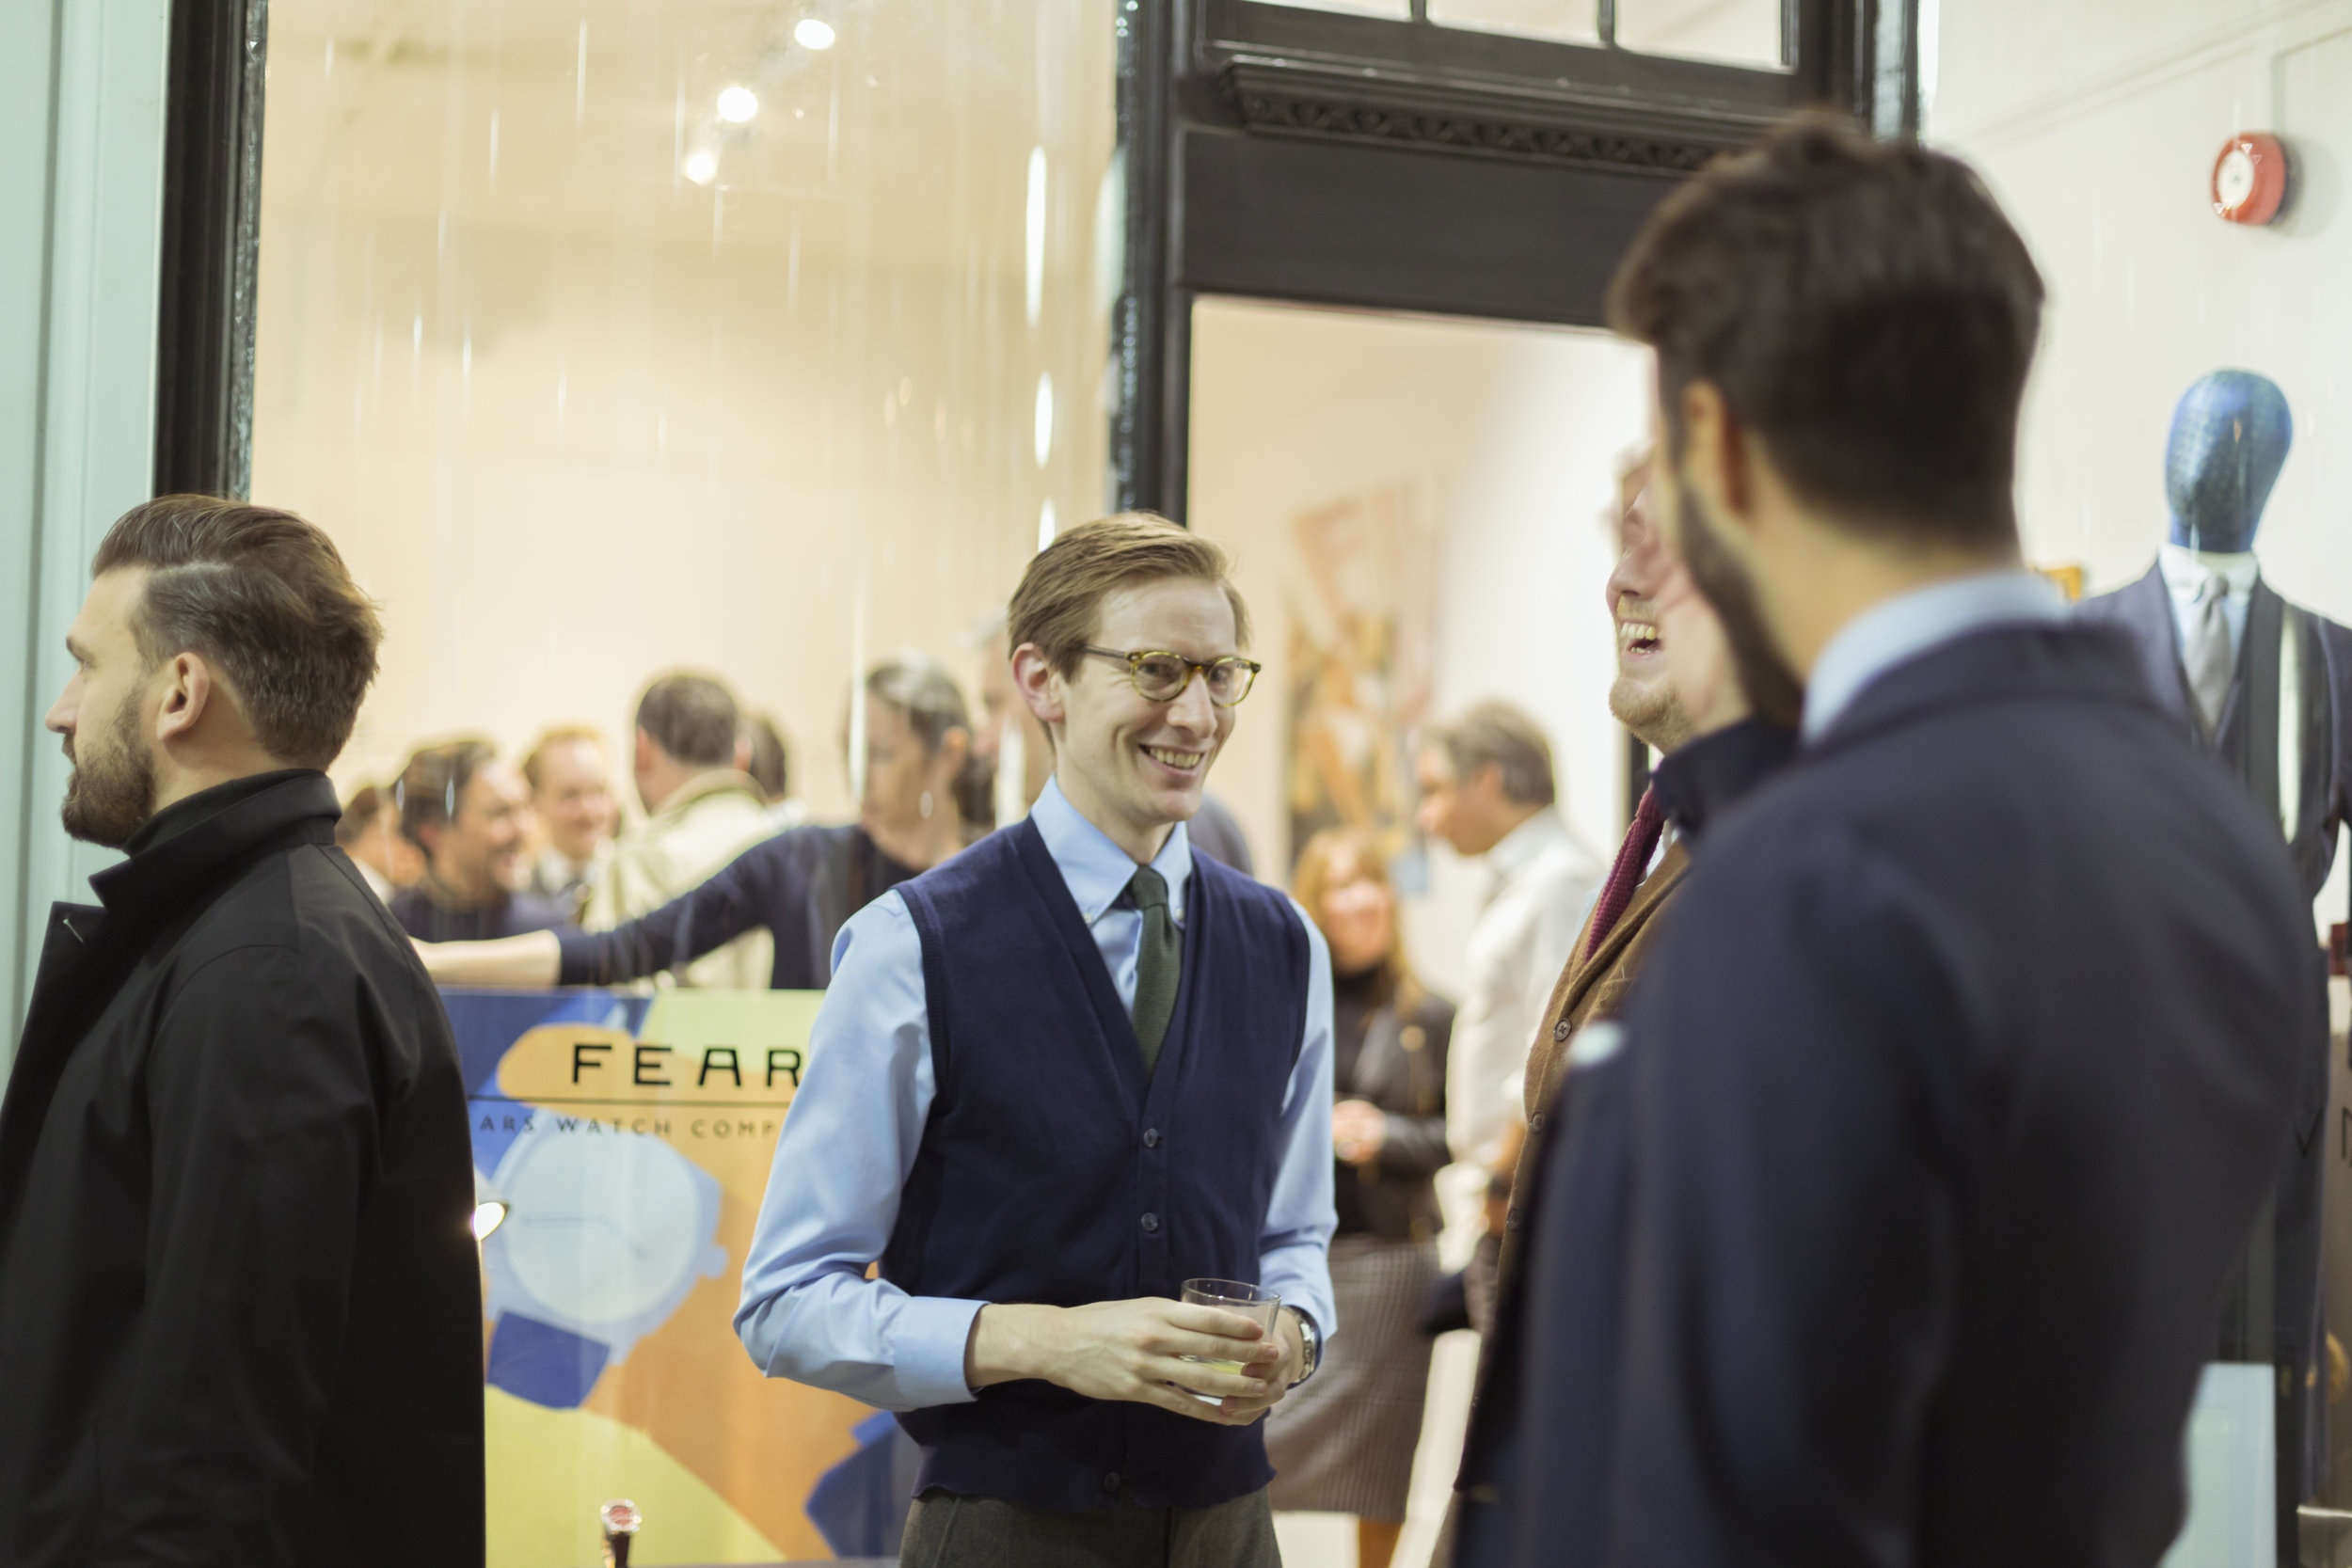 Tom Beecroft of Gownsmith at Kit Blake launch.